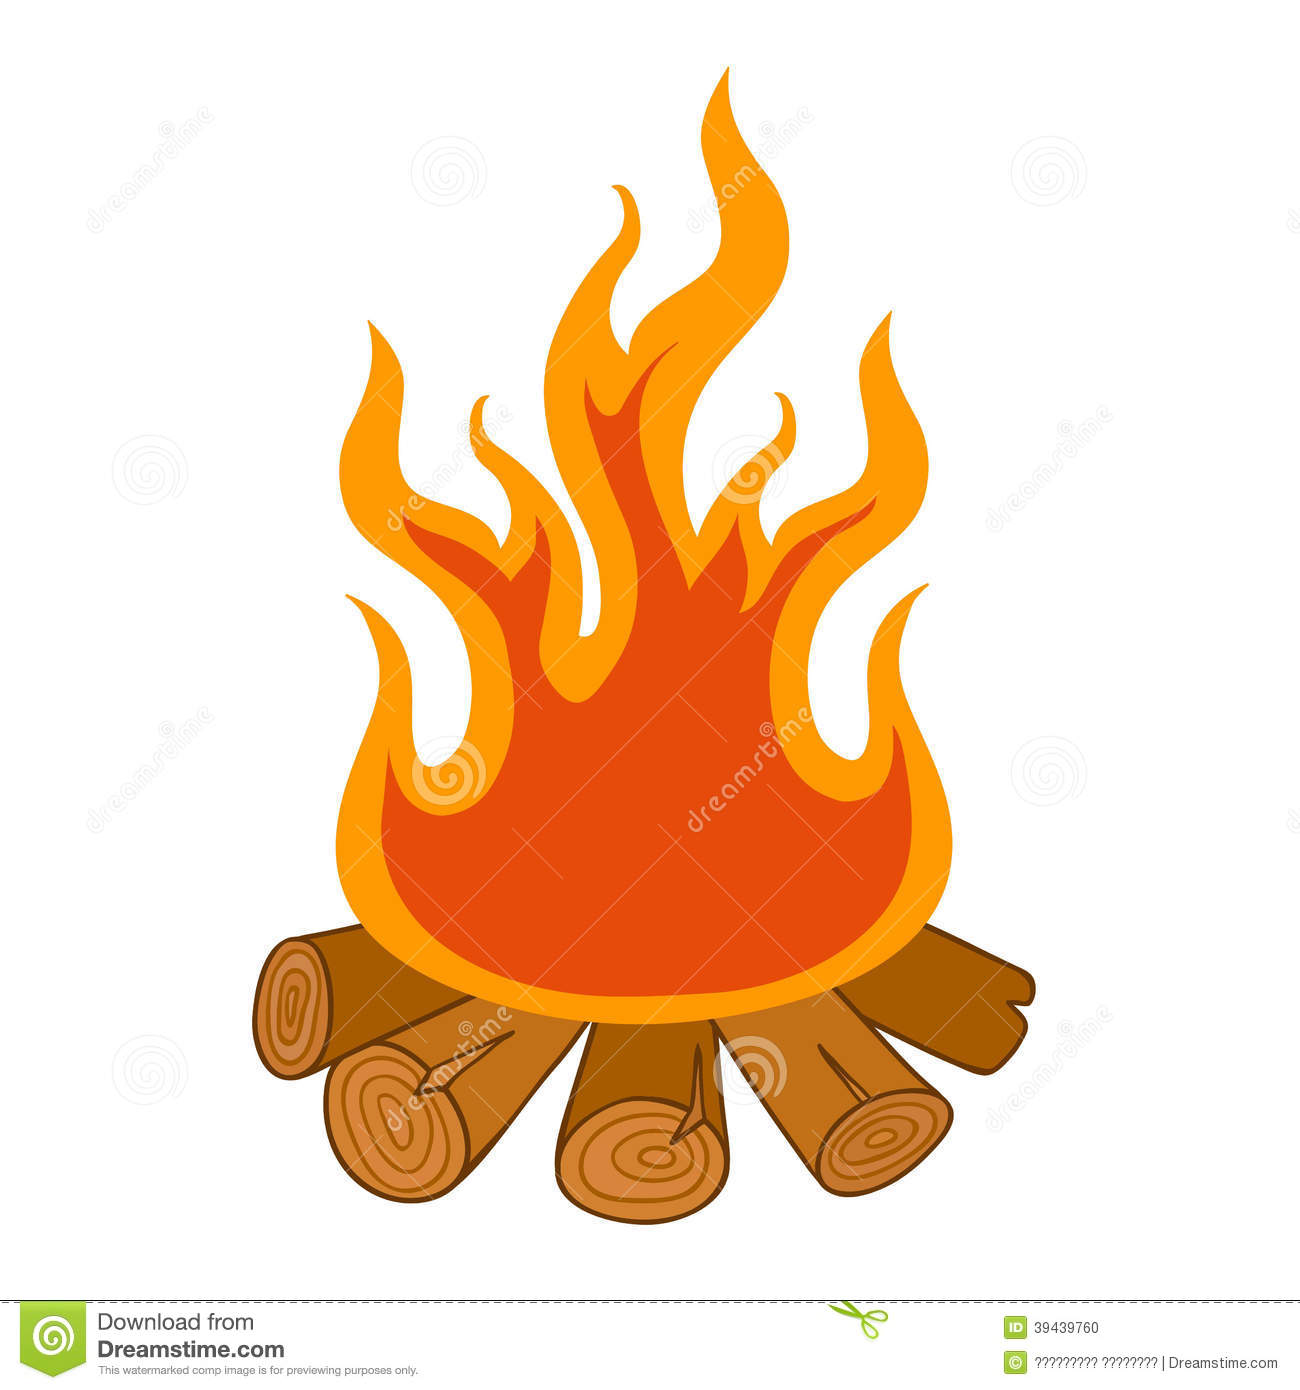 camp fire on white background stock vector illustration of burn cute 39439760. Black Bedroom Furniture Sets. Home Design Ideas